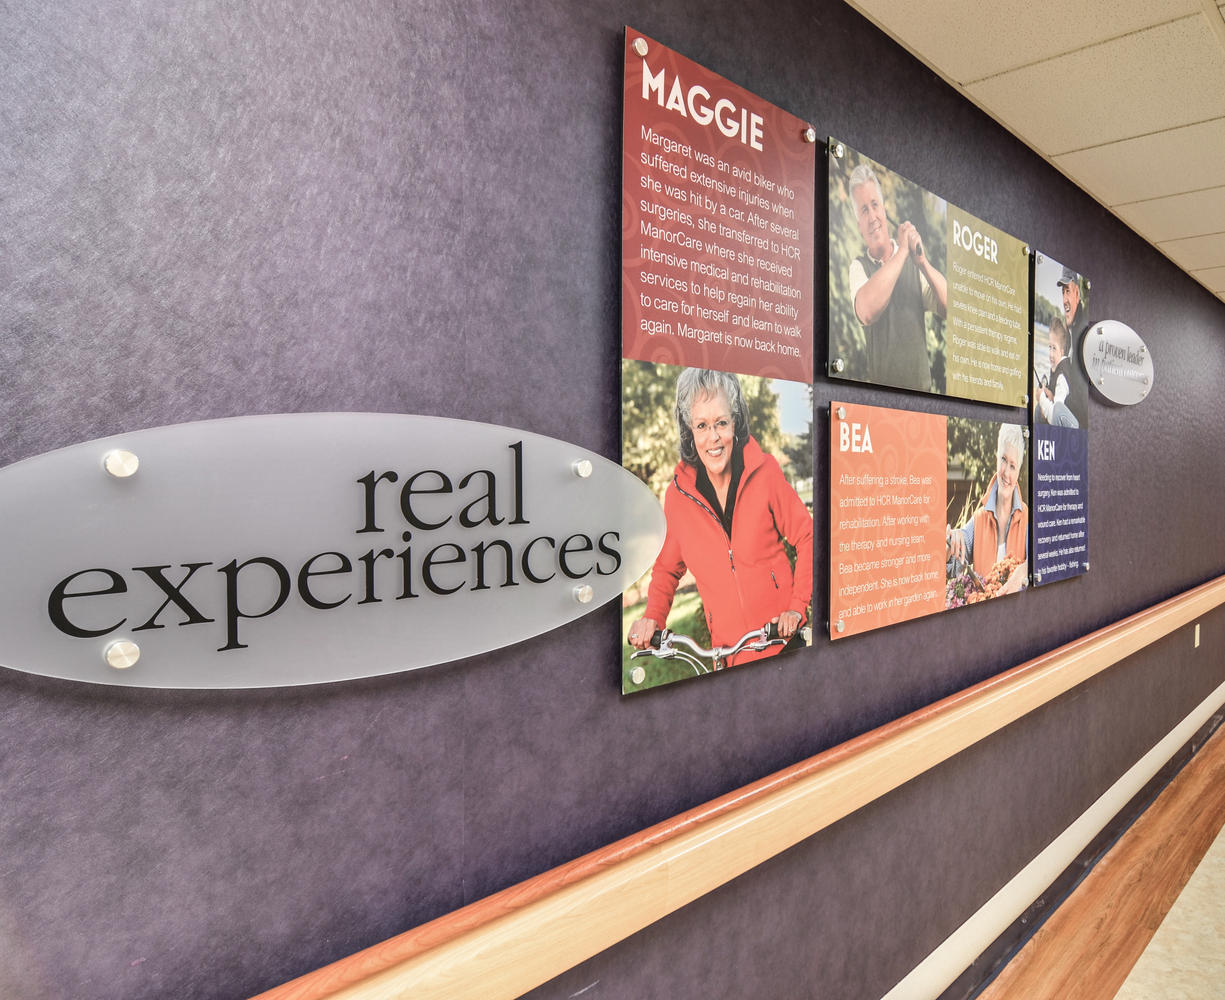 Manorcare Health Service Large 003 Real Experiences 1225X1000 72Dpi